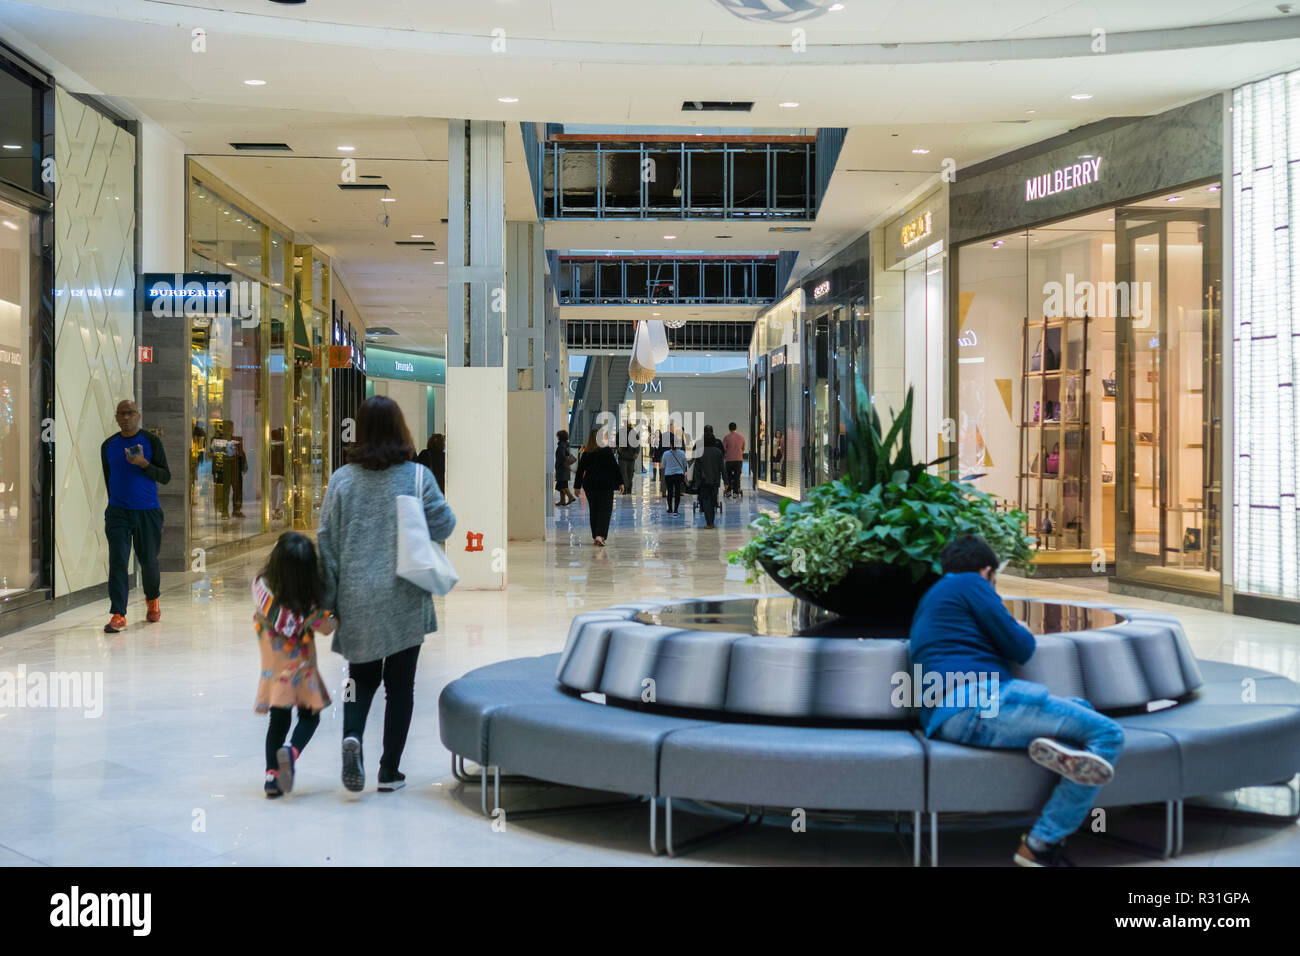 1dbbe11978 Shopping Mall Westfield Sale Stock Photos   Shopping Mall Westfield ...